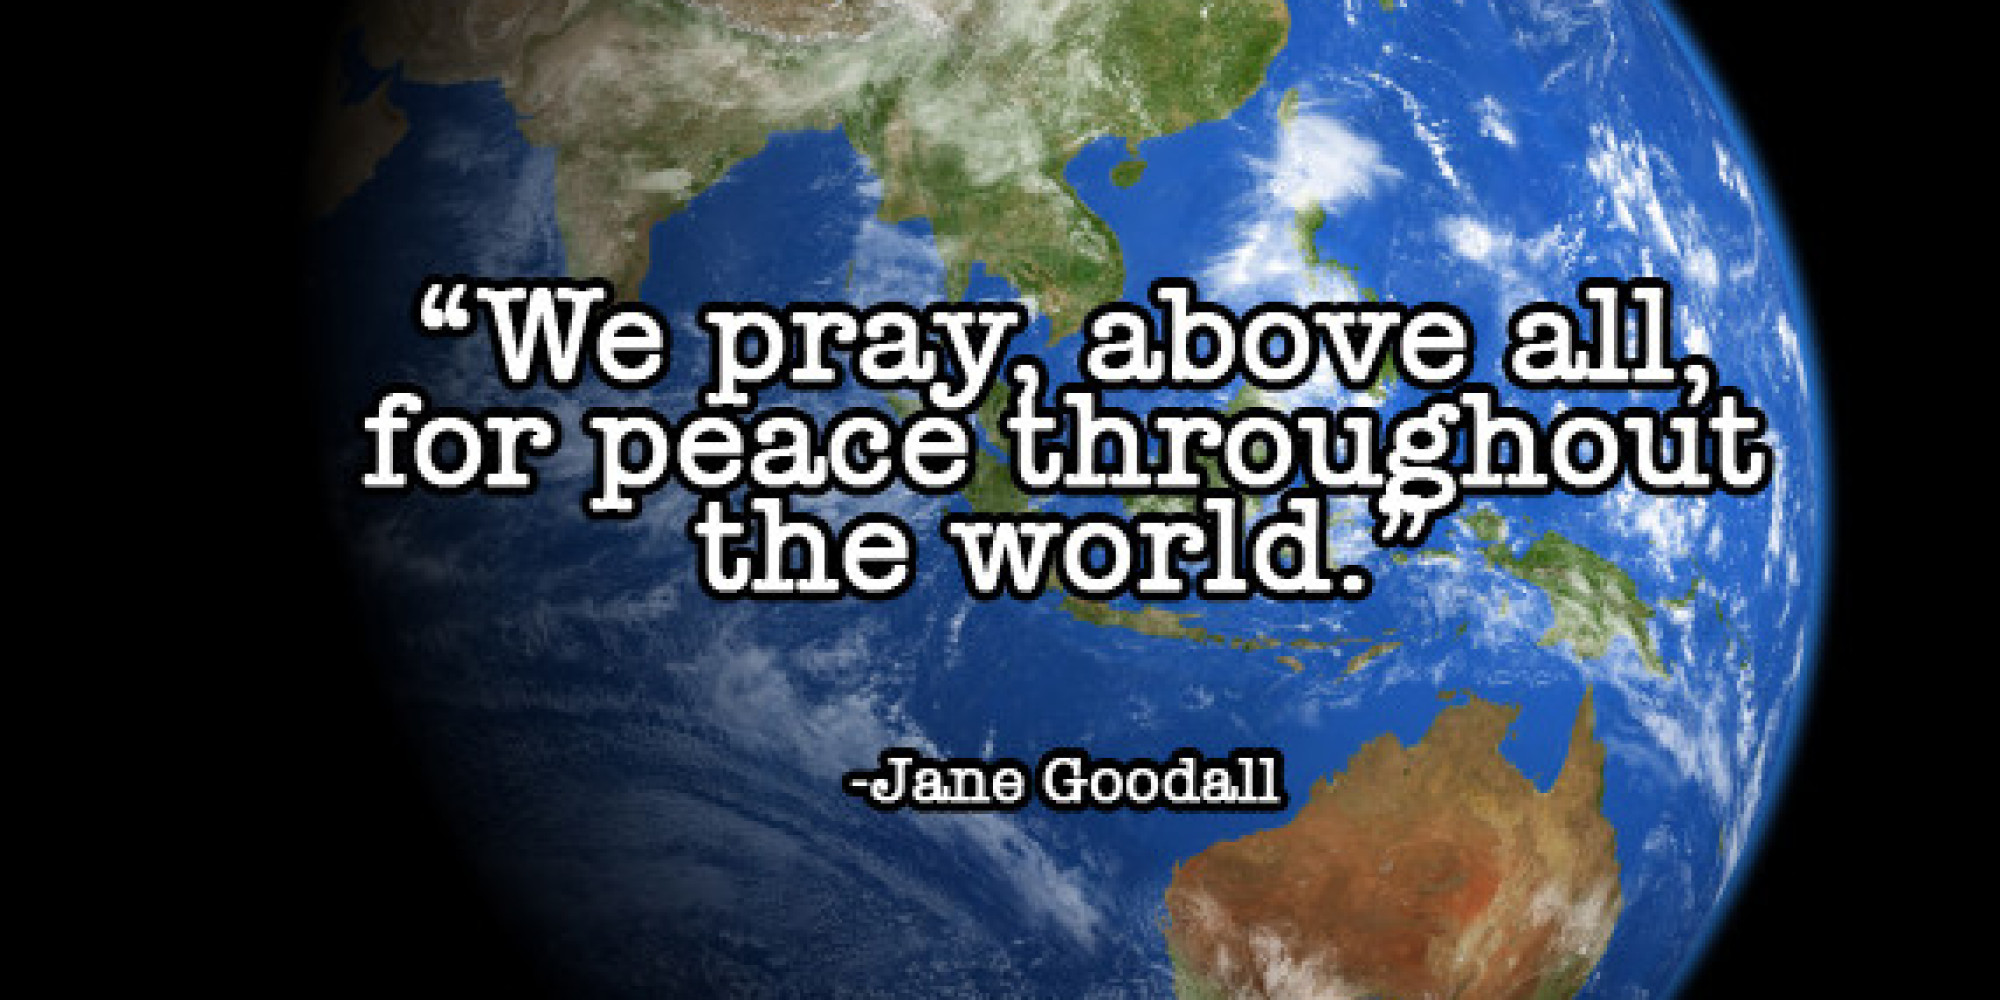 Exceptionnel Daily Meditation: Pray For World Peace | HuffPost KN64